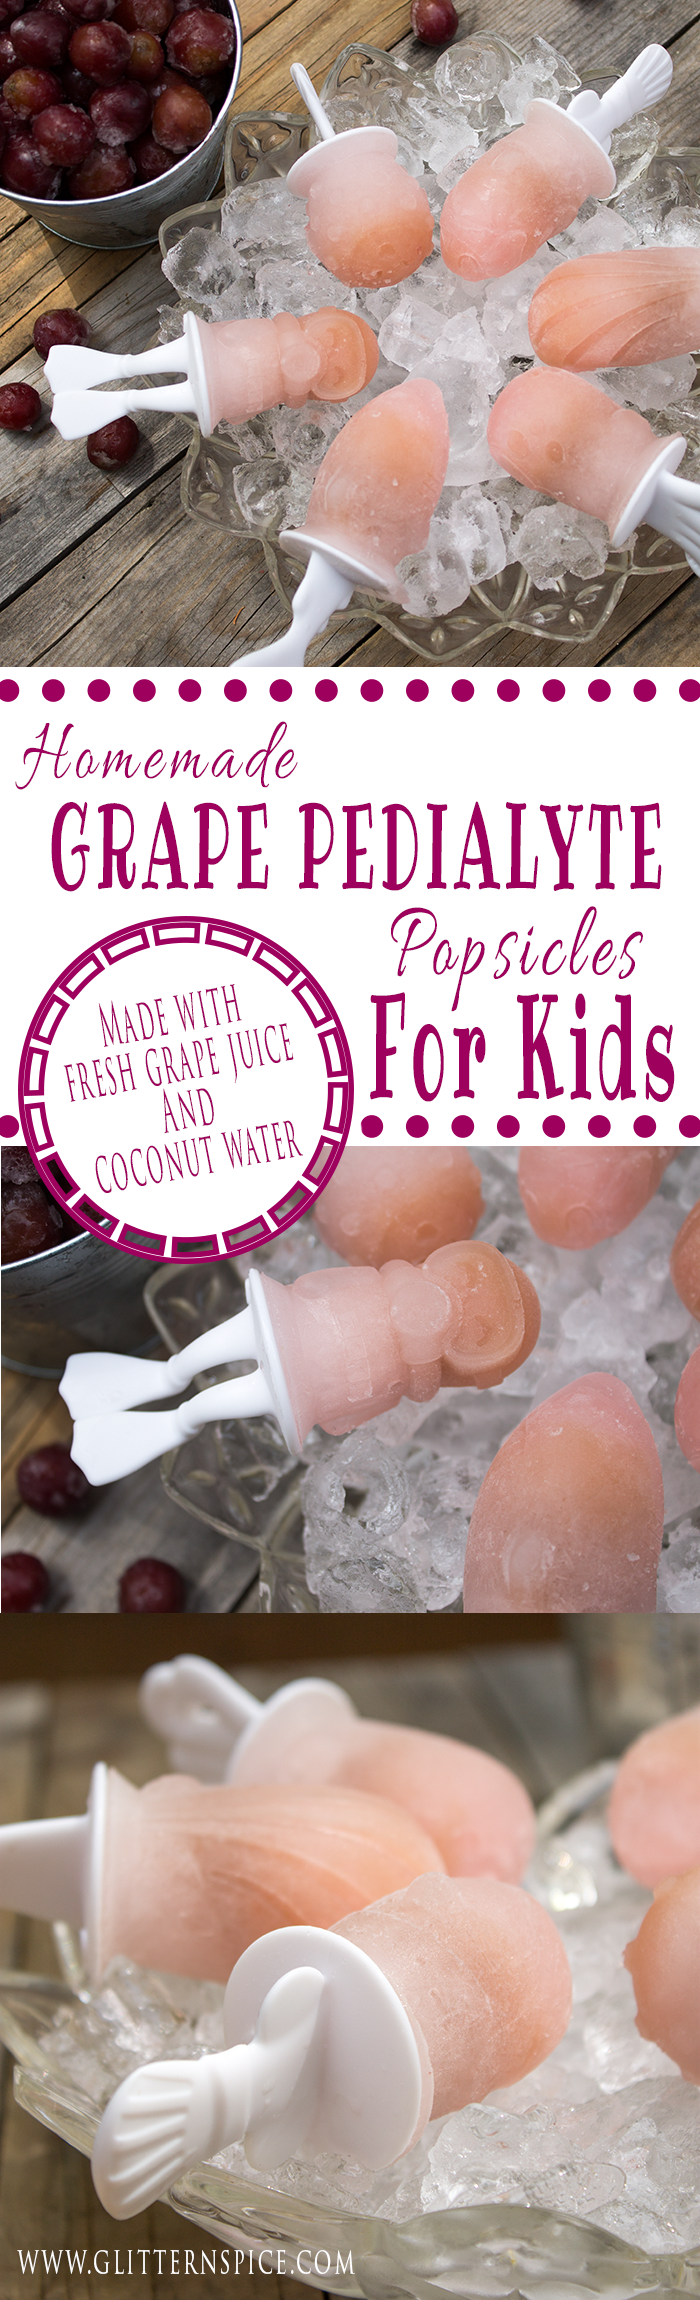 If your kids won't drink or eat when they are sick, try giving them a popsicle instead! These Homemade Grape Pedialyte Popsicles made with fresh grape juice and coconut water are a tasty treat that helps replenish lost fluids and electrolytes. Use fun popsicle shapes, like the Zoku Fish Pops, to encourage even the sickest child to want to eat the popsicles.